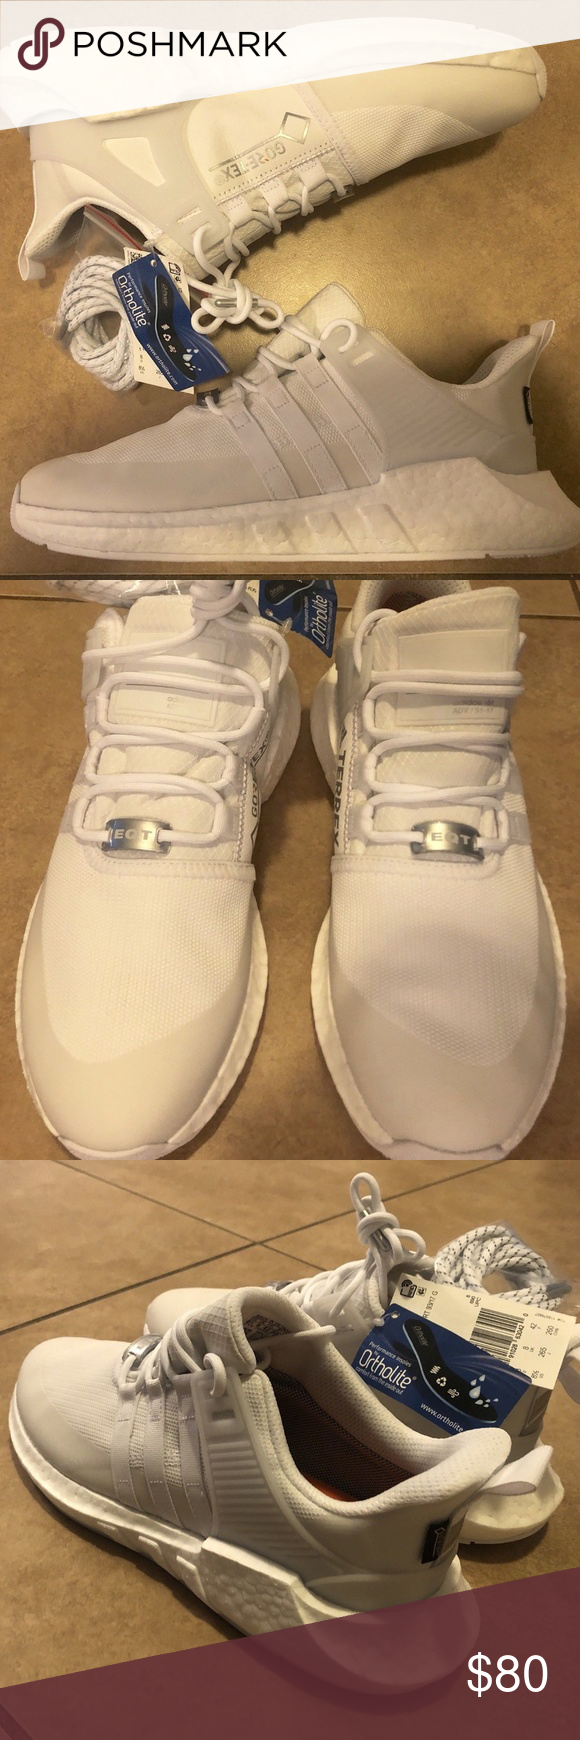 timeless design a0d5f fa09e Adidas Men s EQT Support Boost 93 17 GTX New Without Box. Adidas Equipment  ADV 91 17. White and Cream. Goretex. Boost adidas Shoes Sneakers